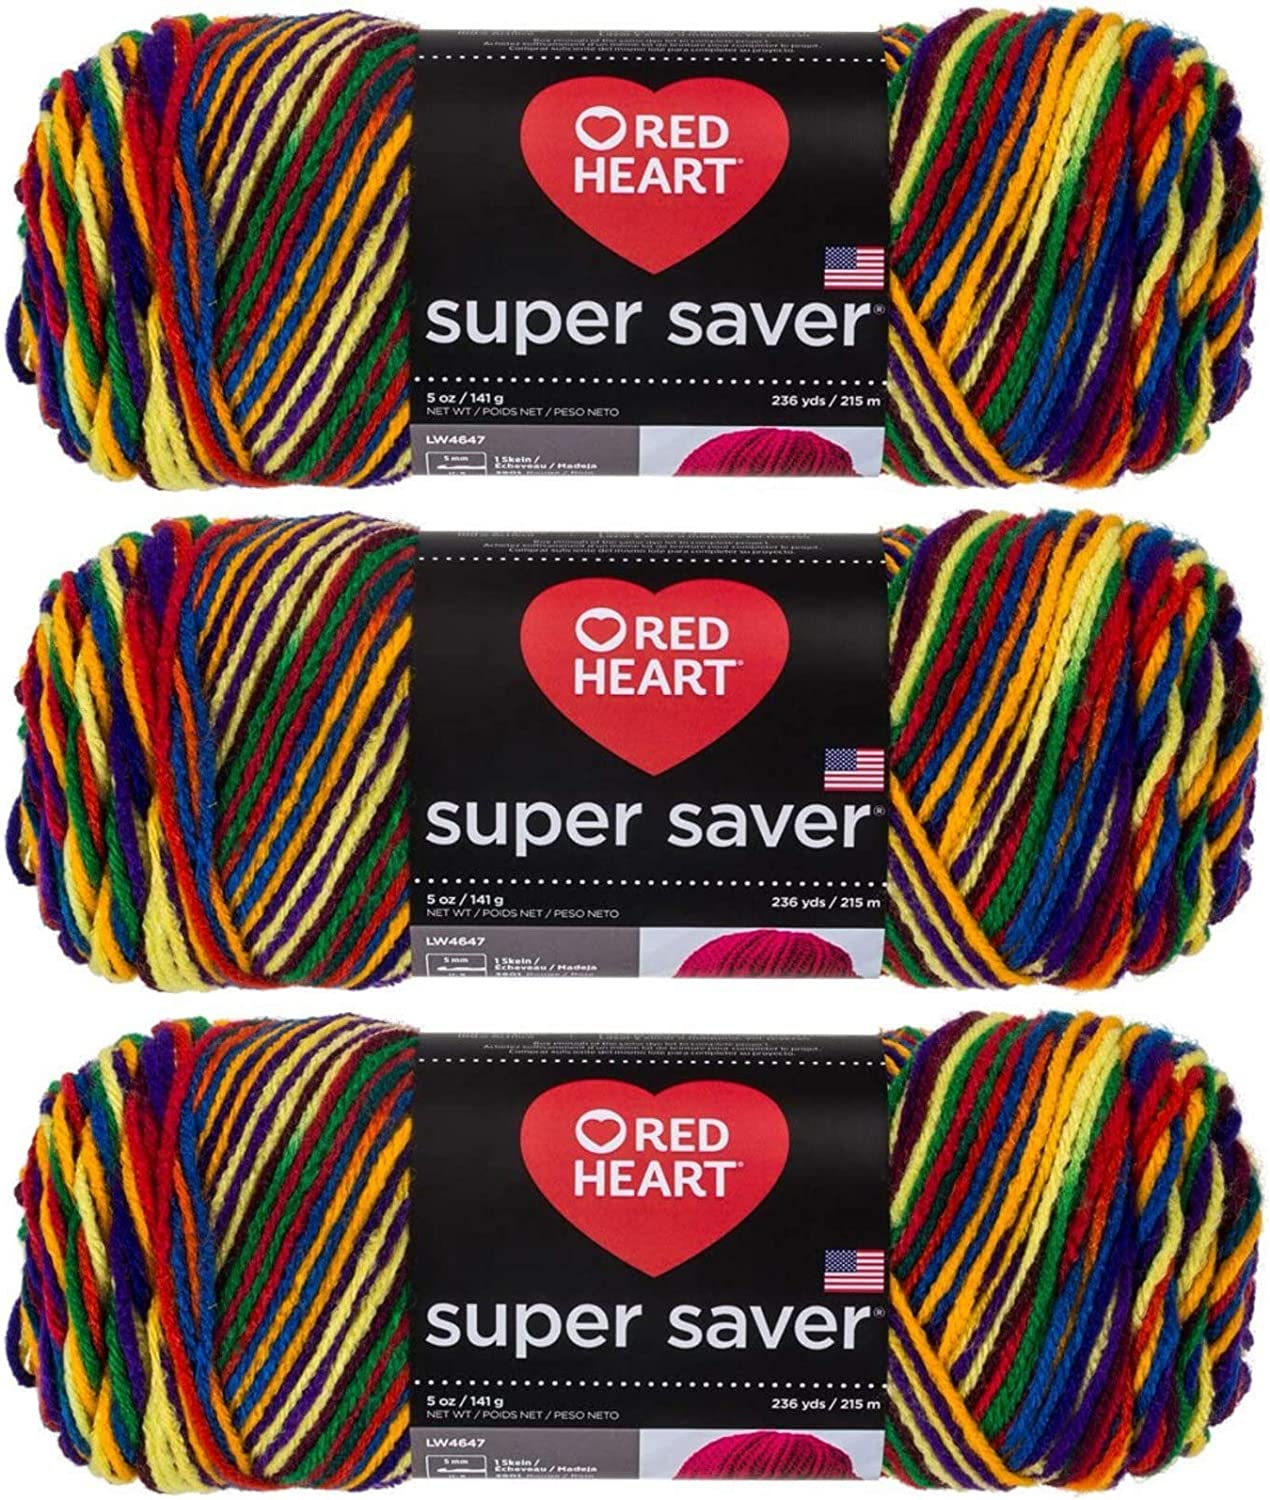 Red Heart Elegant E300-950 Super Yarn - Mexicana Limited Special Price Saver